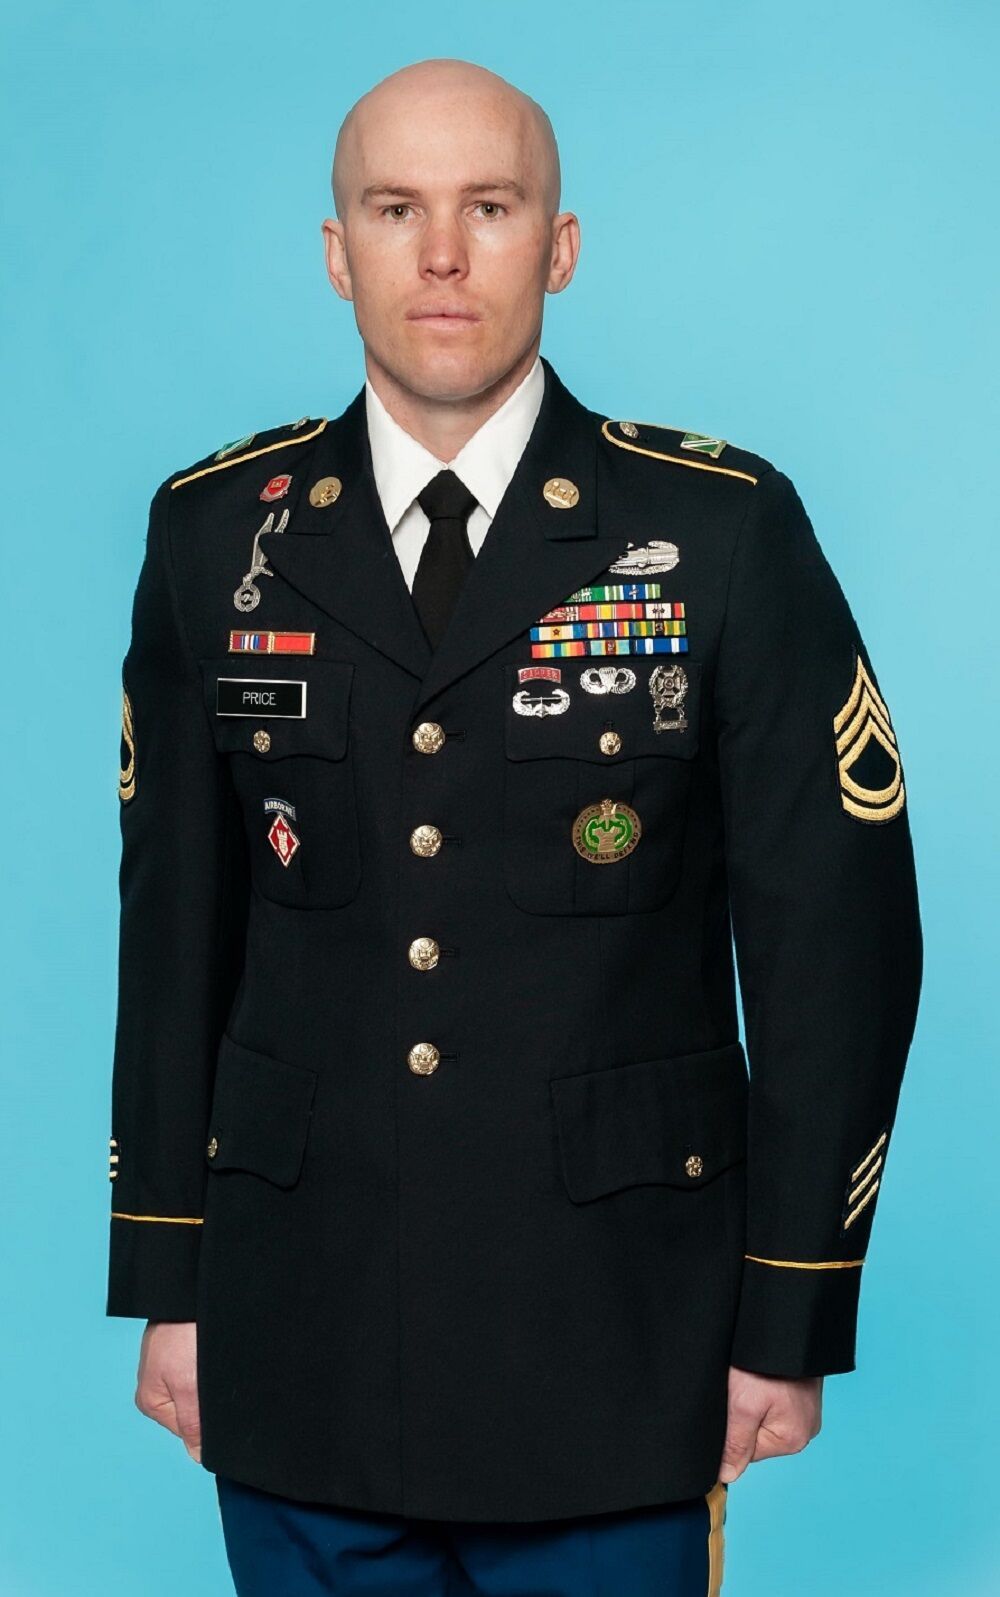 Security entreprise Soldier 1 Army photo.jpg